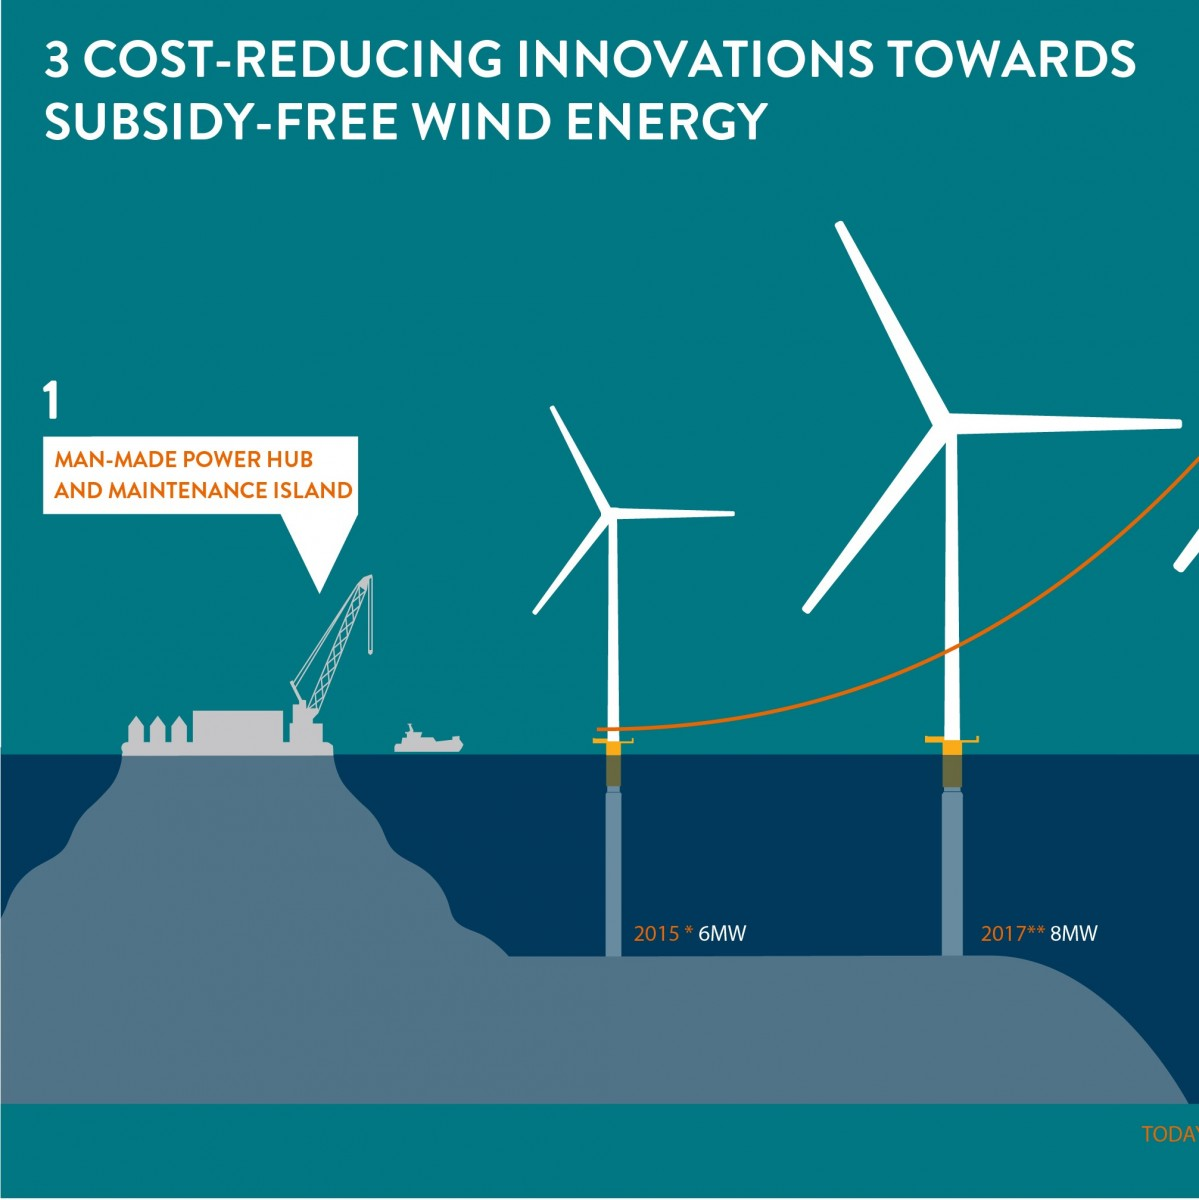 3 Cost Reducing Innovations Towards Subsidy Free Wind Energy